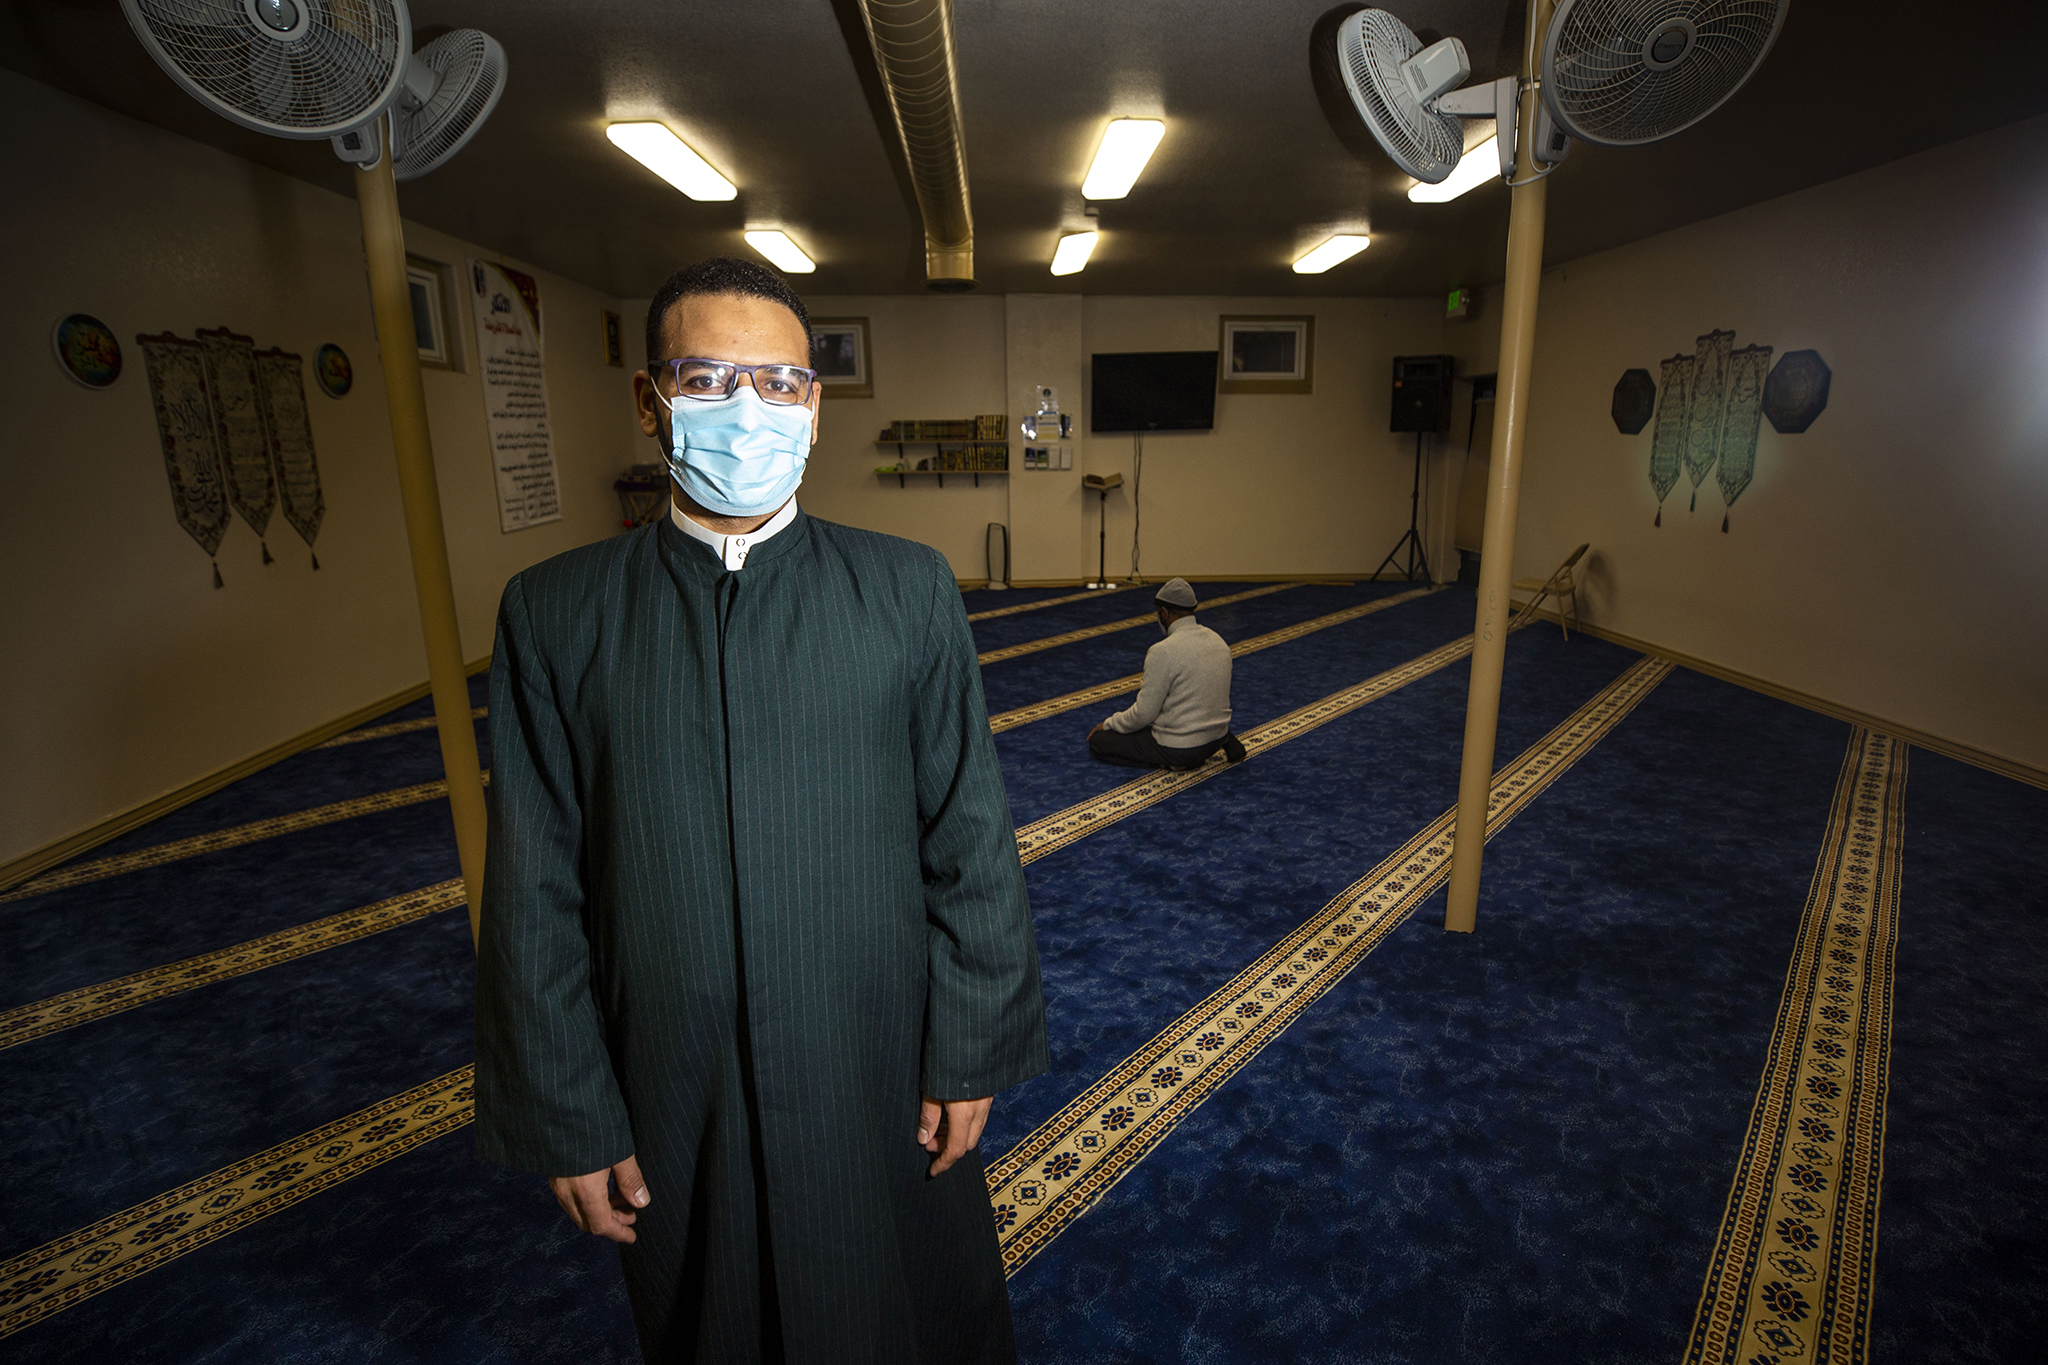 Imam Muhammad Kolila stands in the Whittier's Downtown Denver Islamic Center before evening prayer. March 2, 2021.